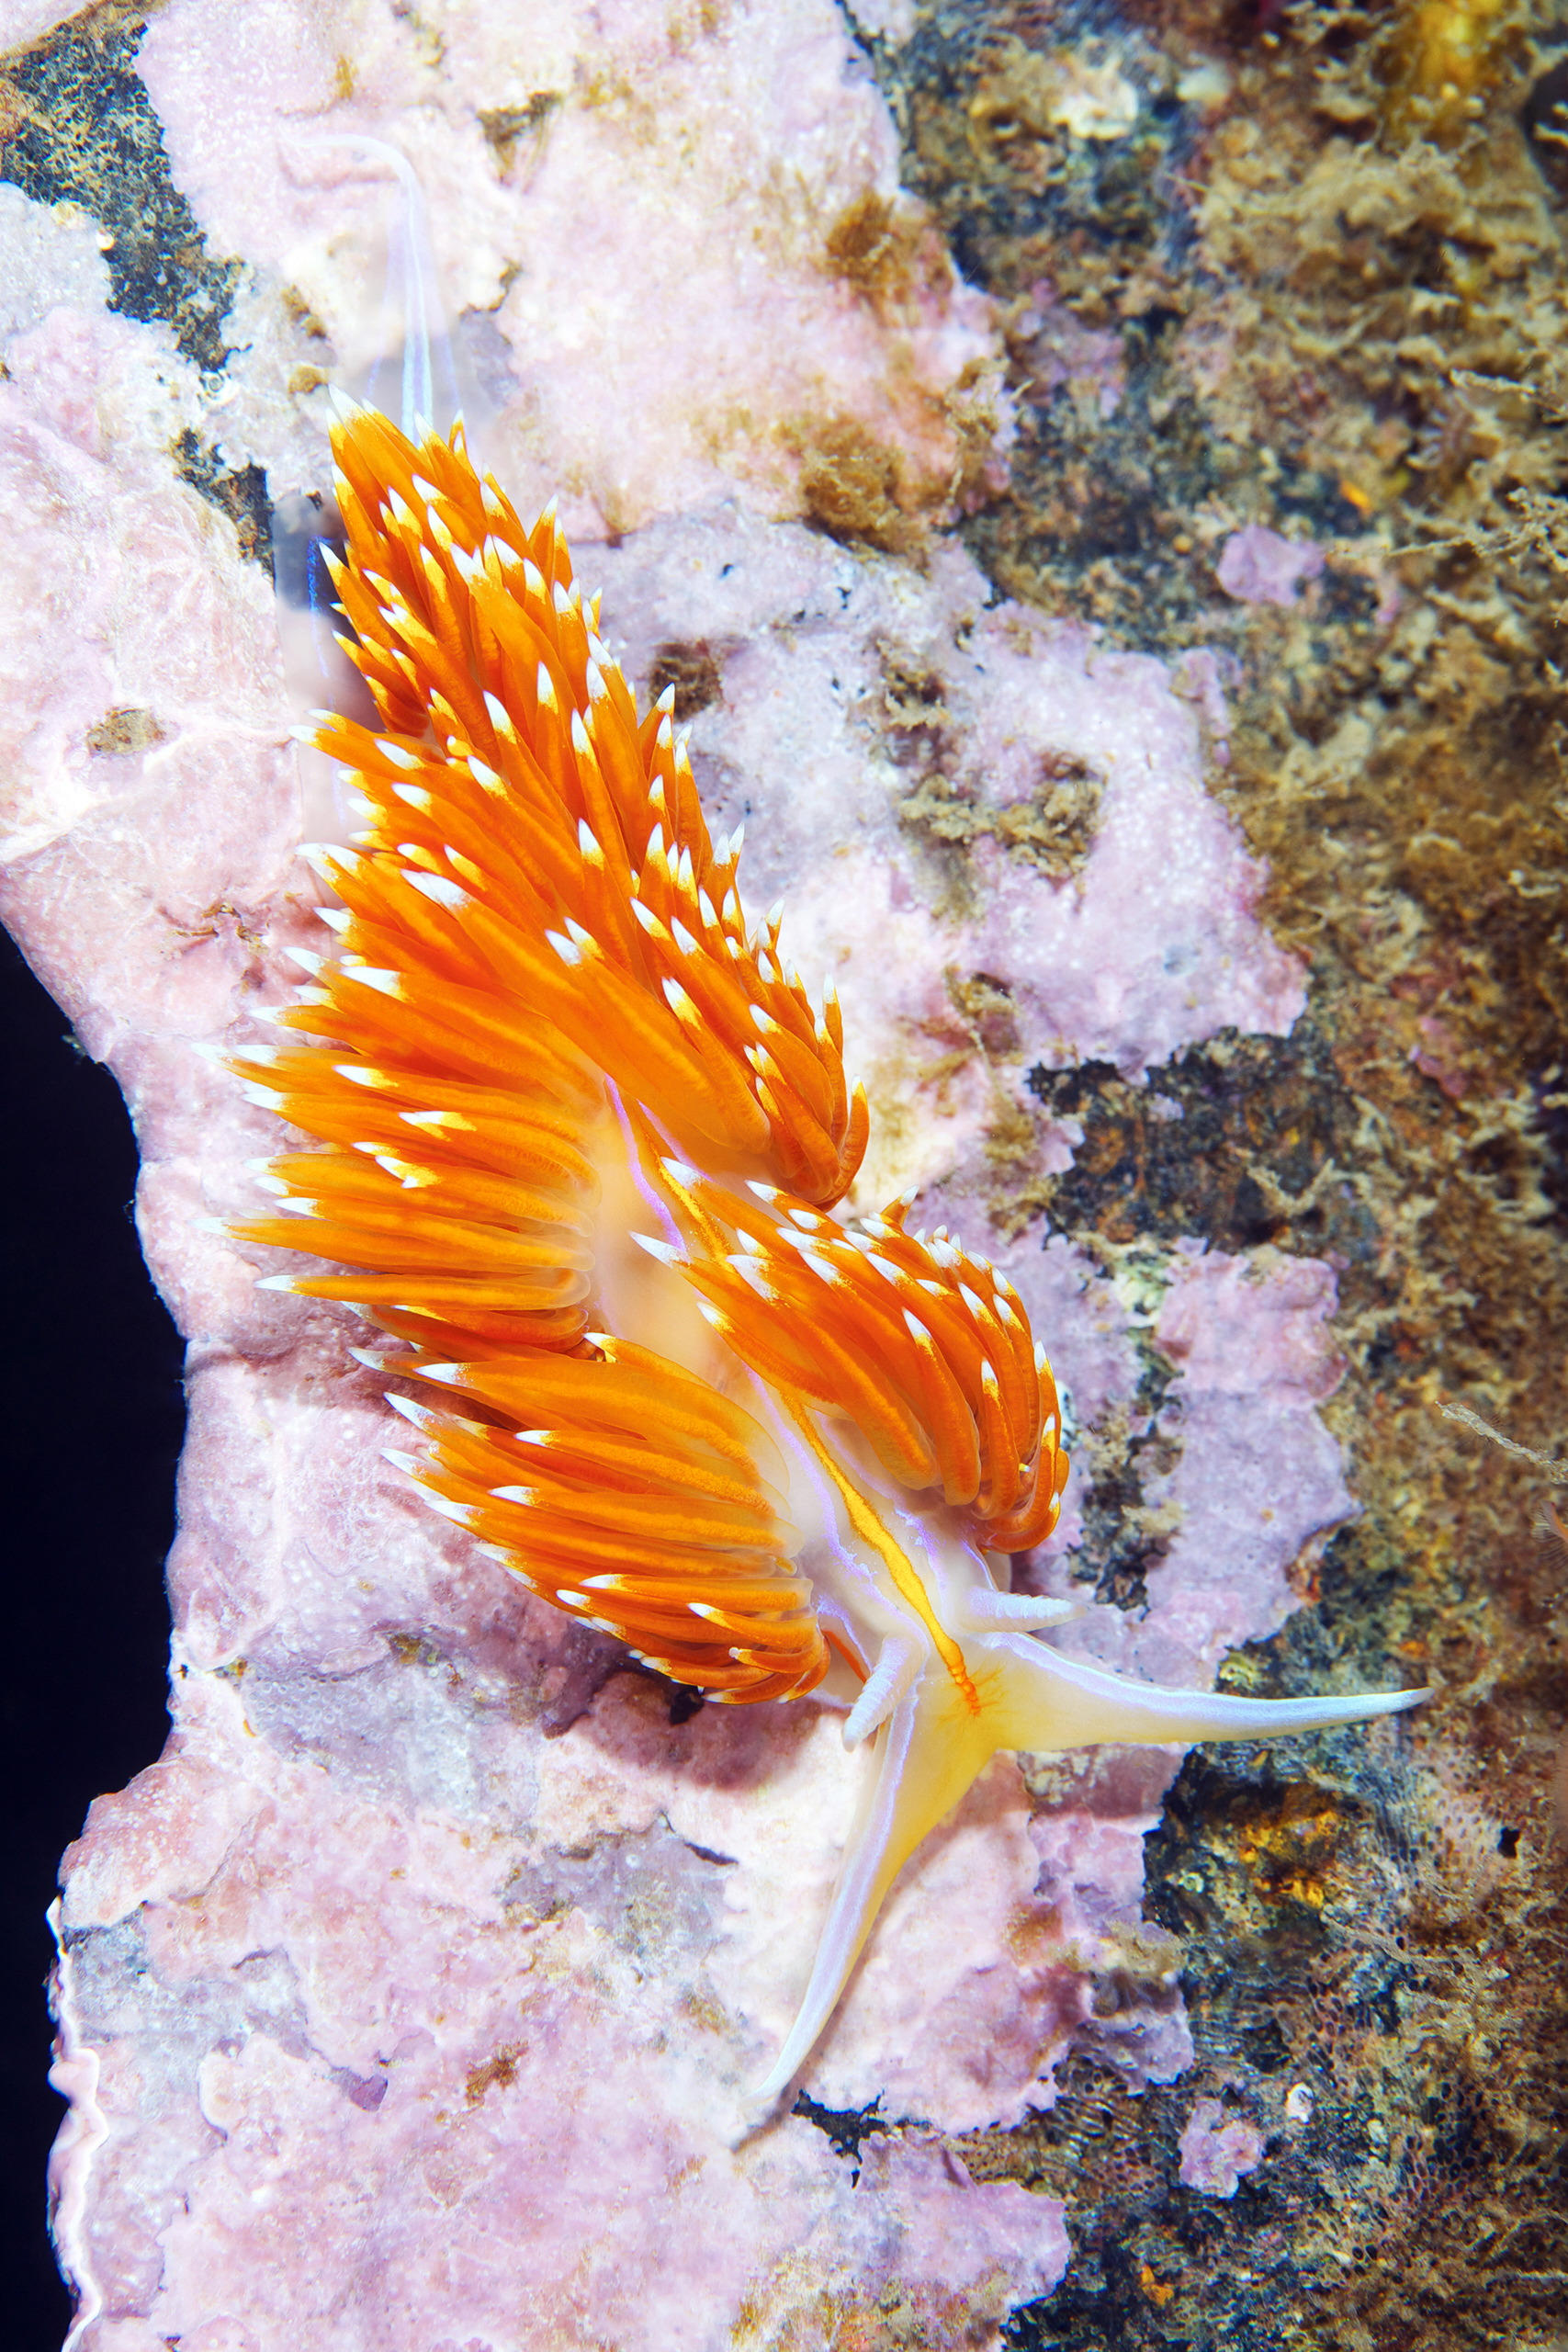 Nudibranchia – Hermissenda crassicornis 3